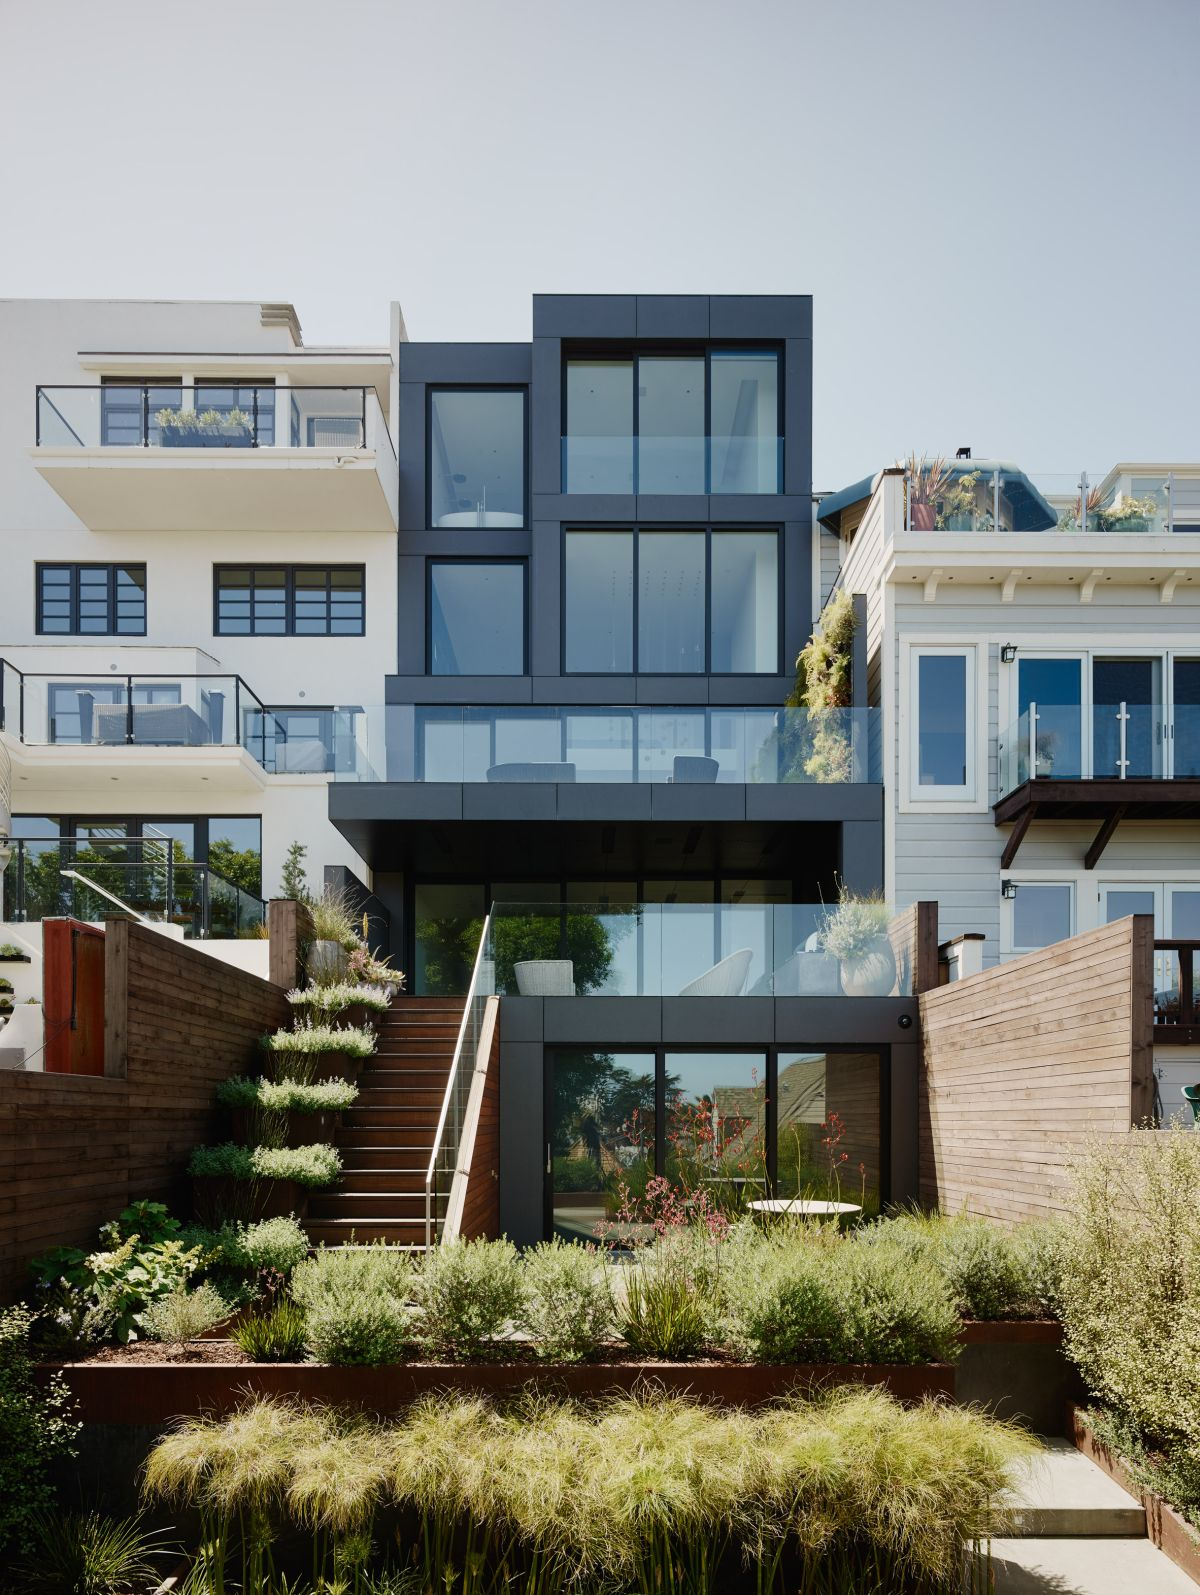 1563534934 952 35 modern house designs that look amazing from every angle - 35 Modern House Designs That Look Amazing From Every Angle